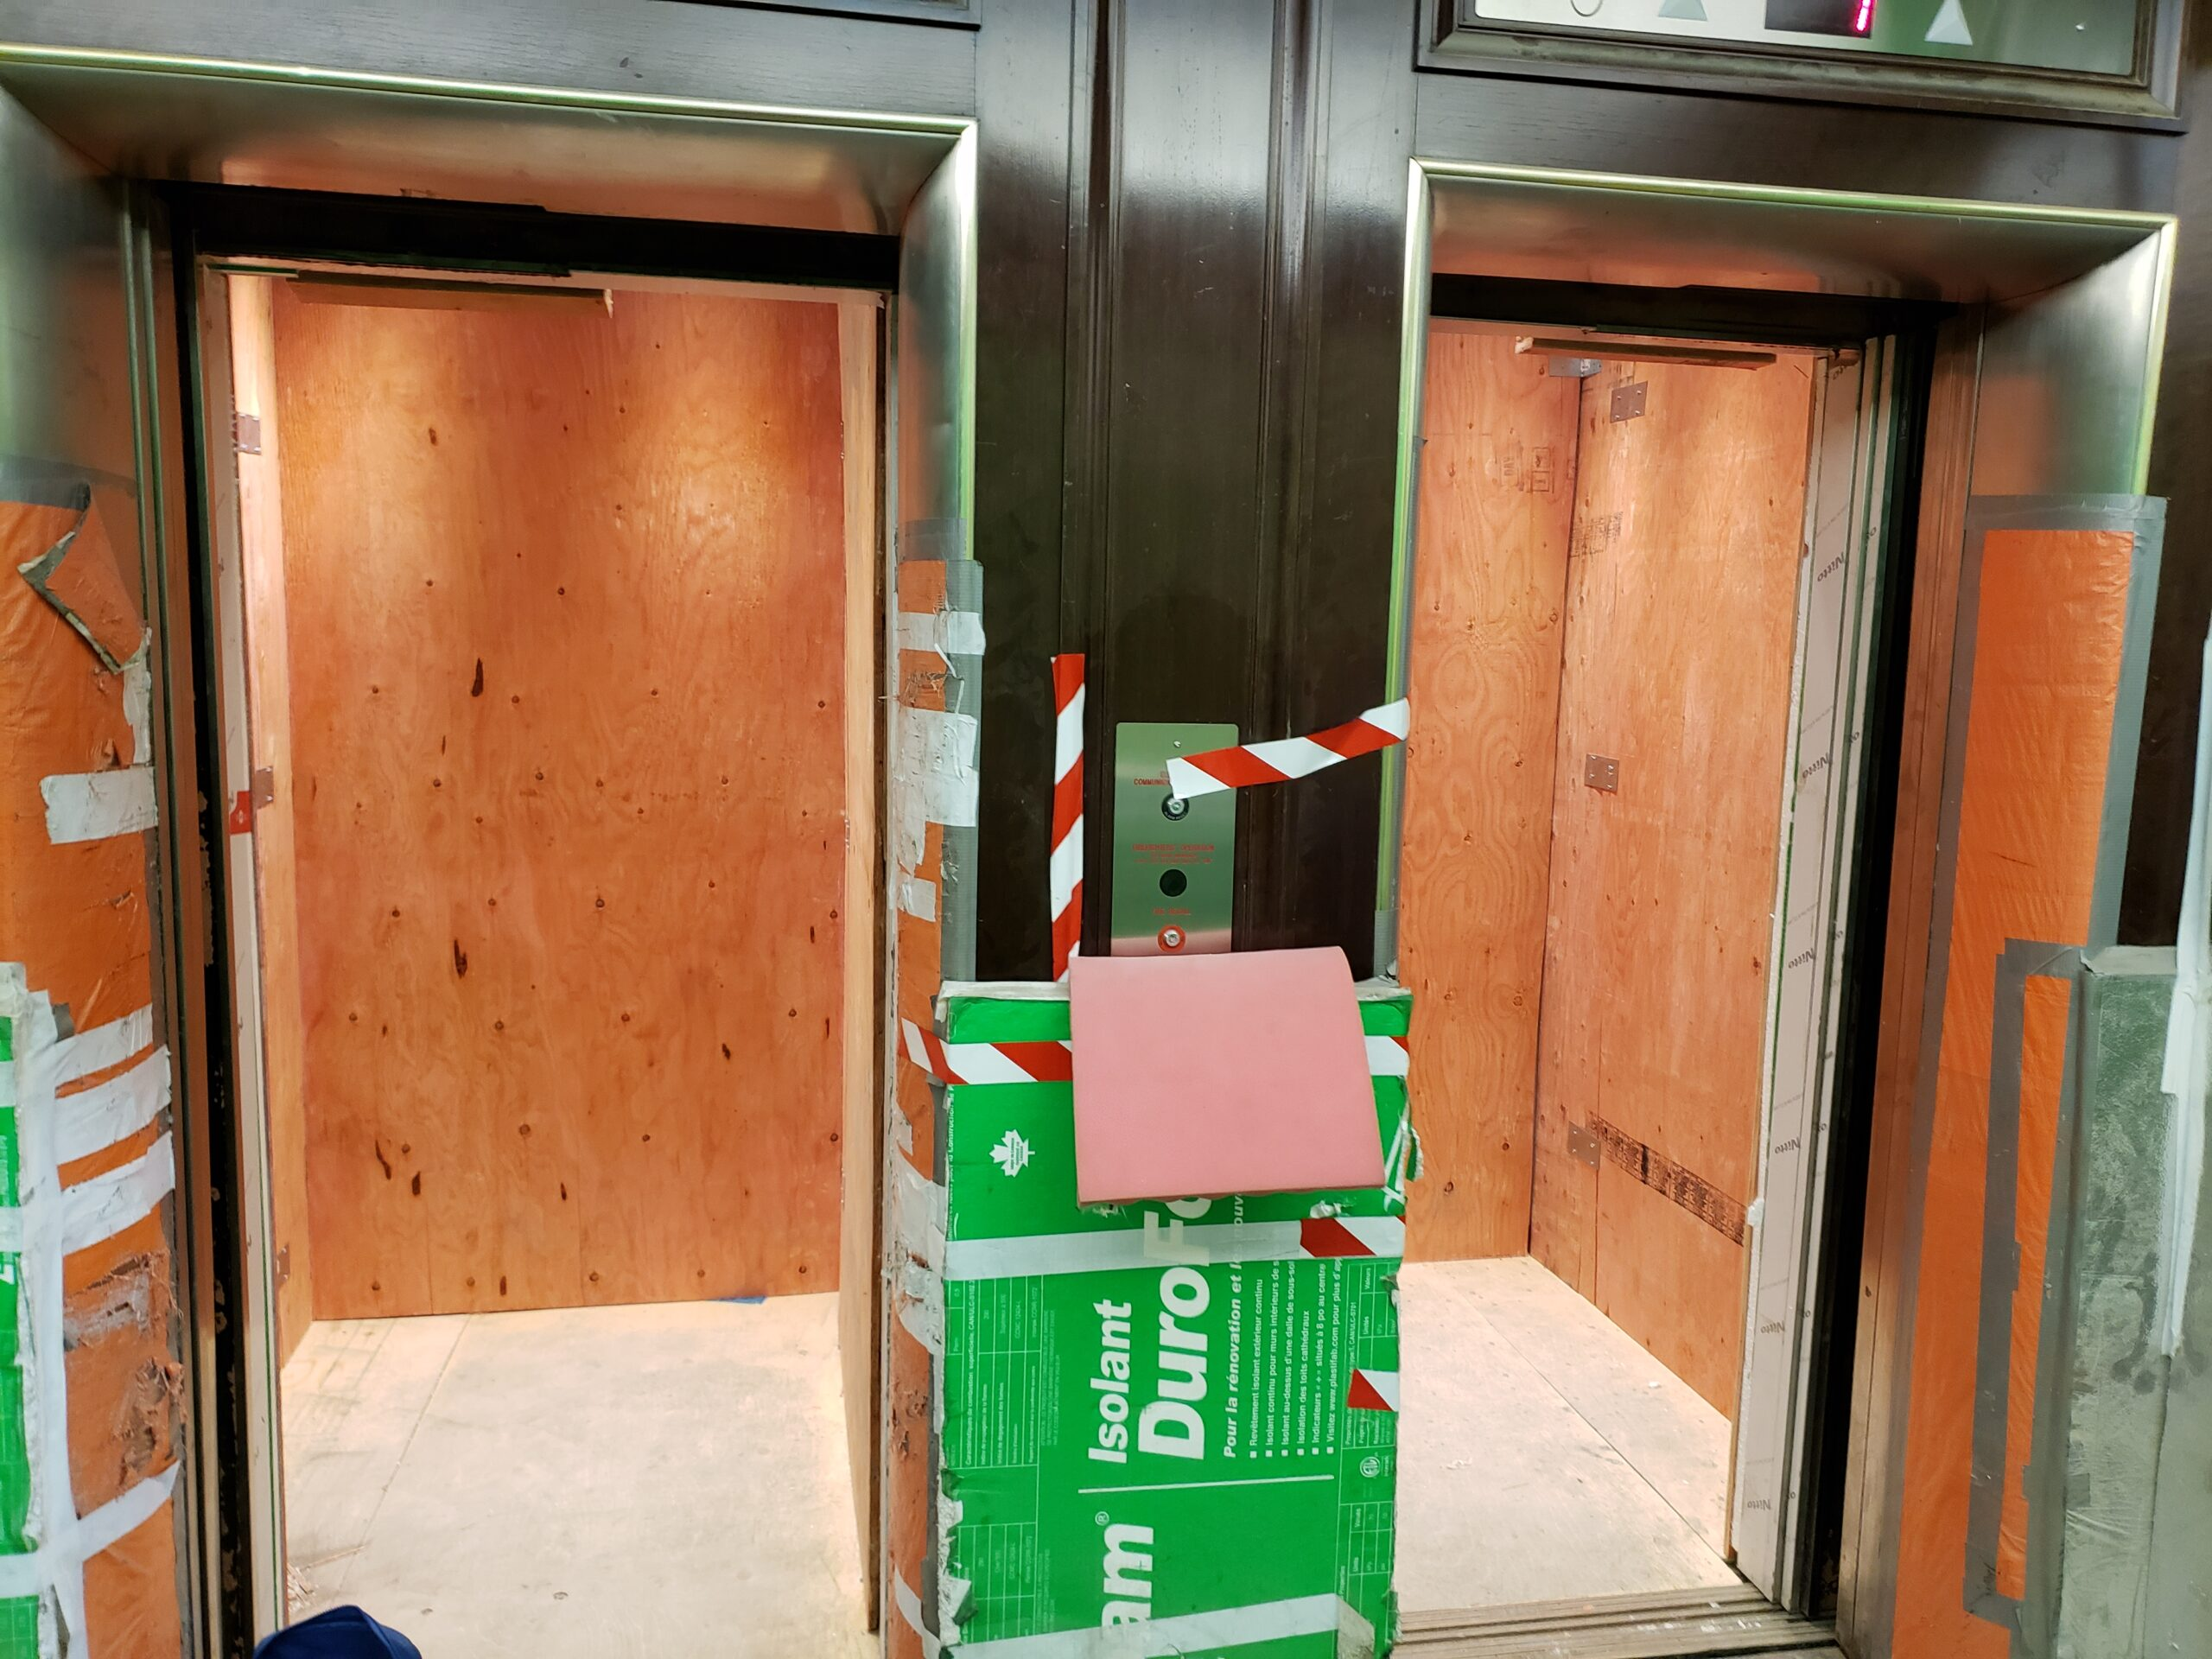 357 ELEVATOR PROTECTION AFTER